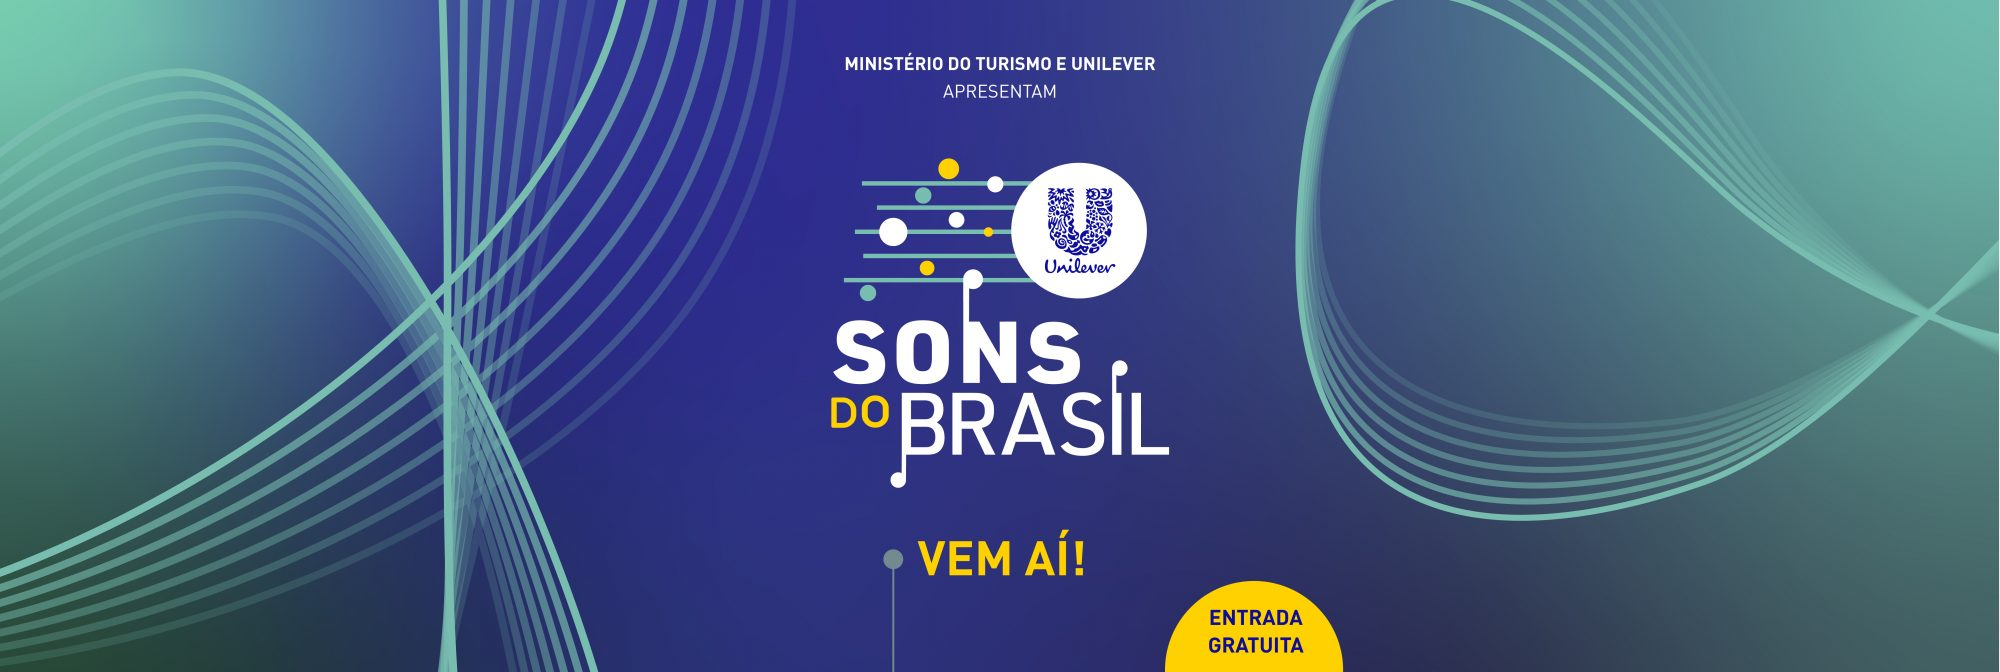 Unilever Sons do Brasil